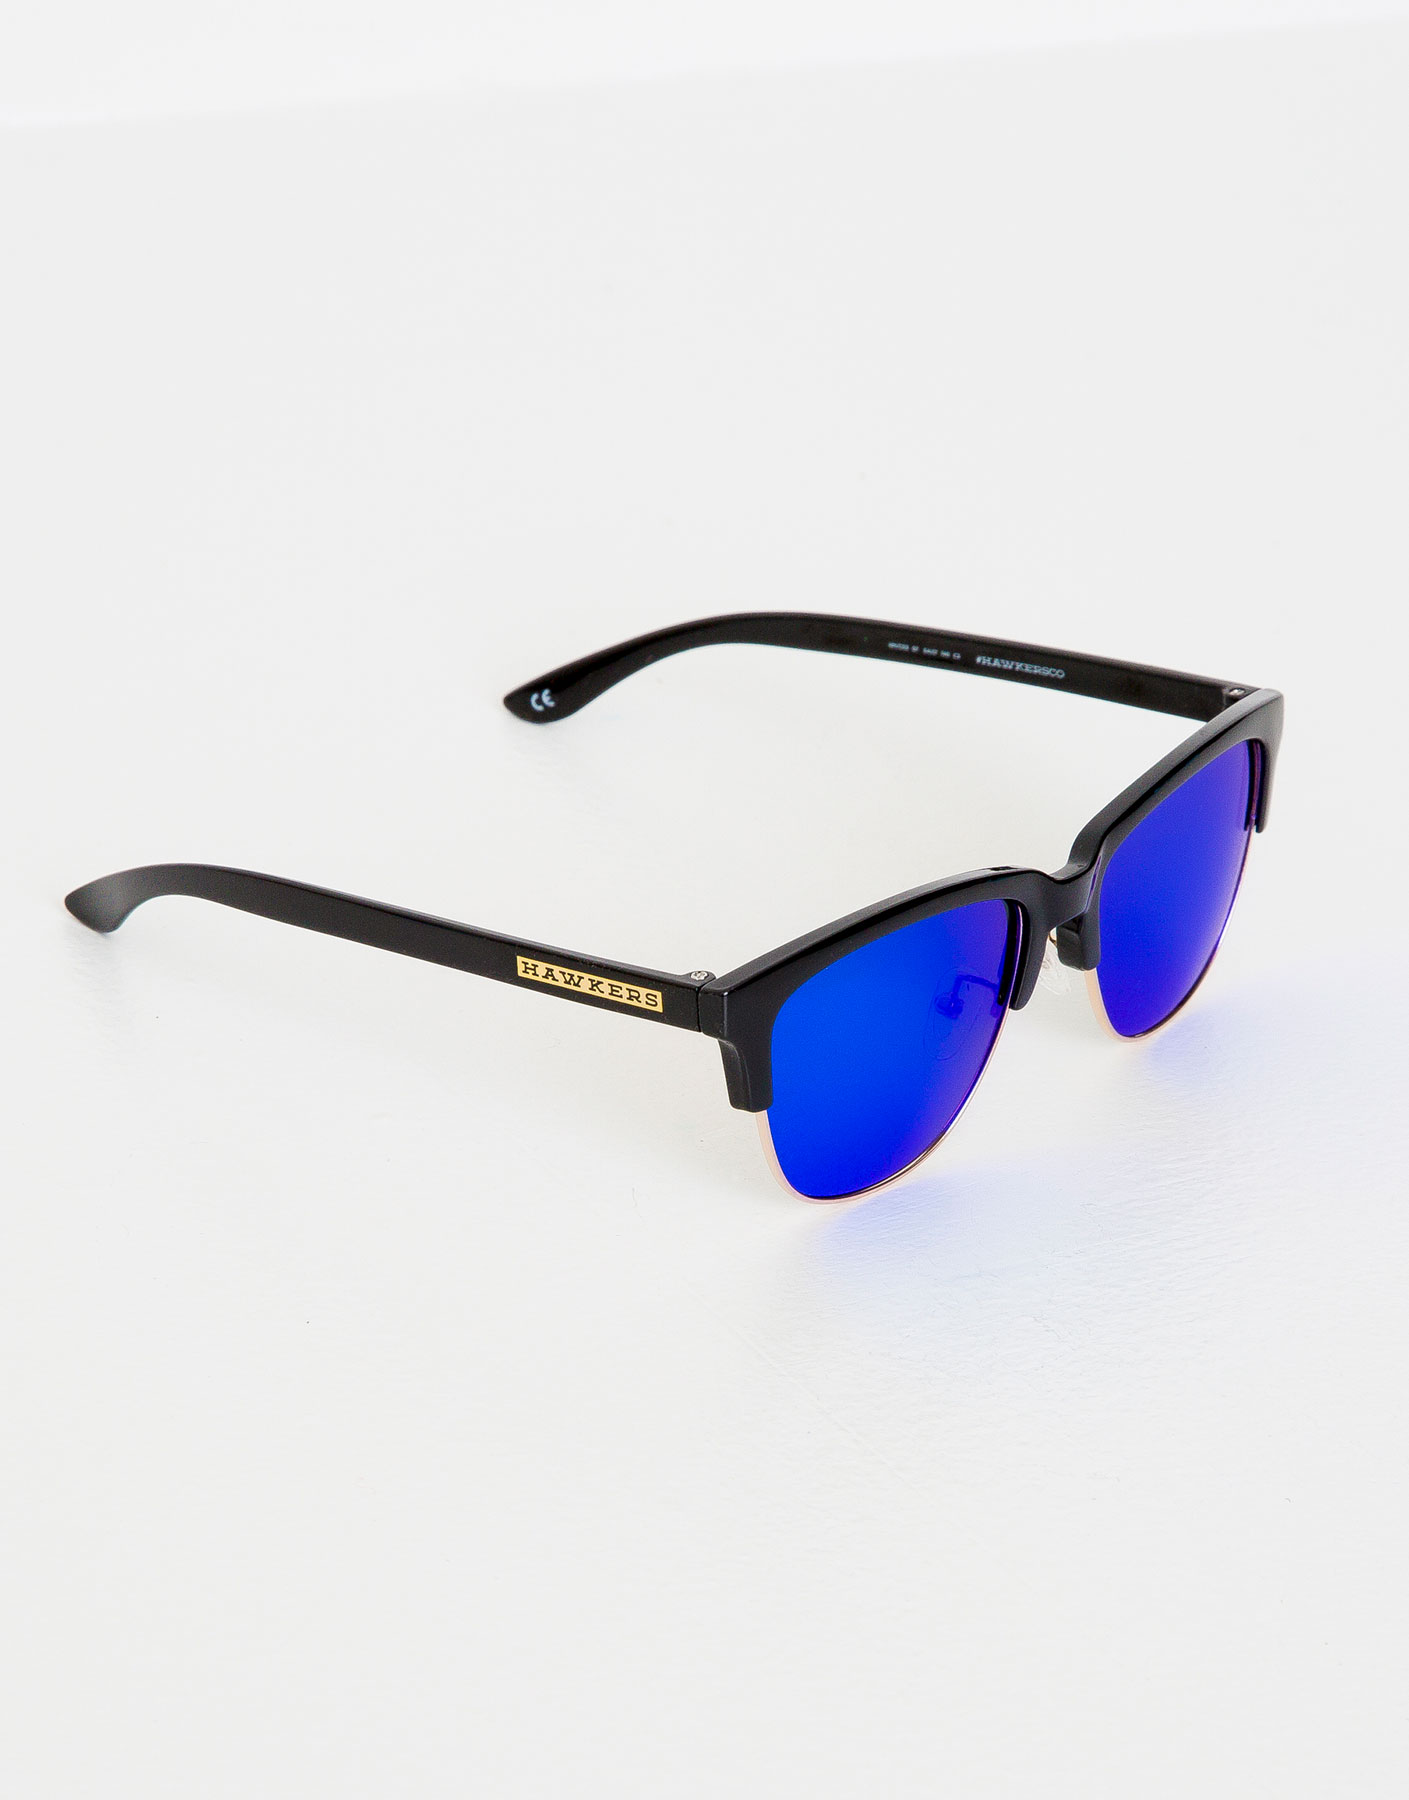 Hawkers diamond black sky classic sunglasses